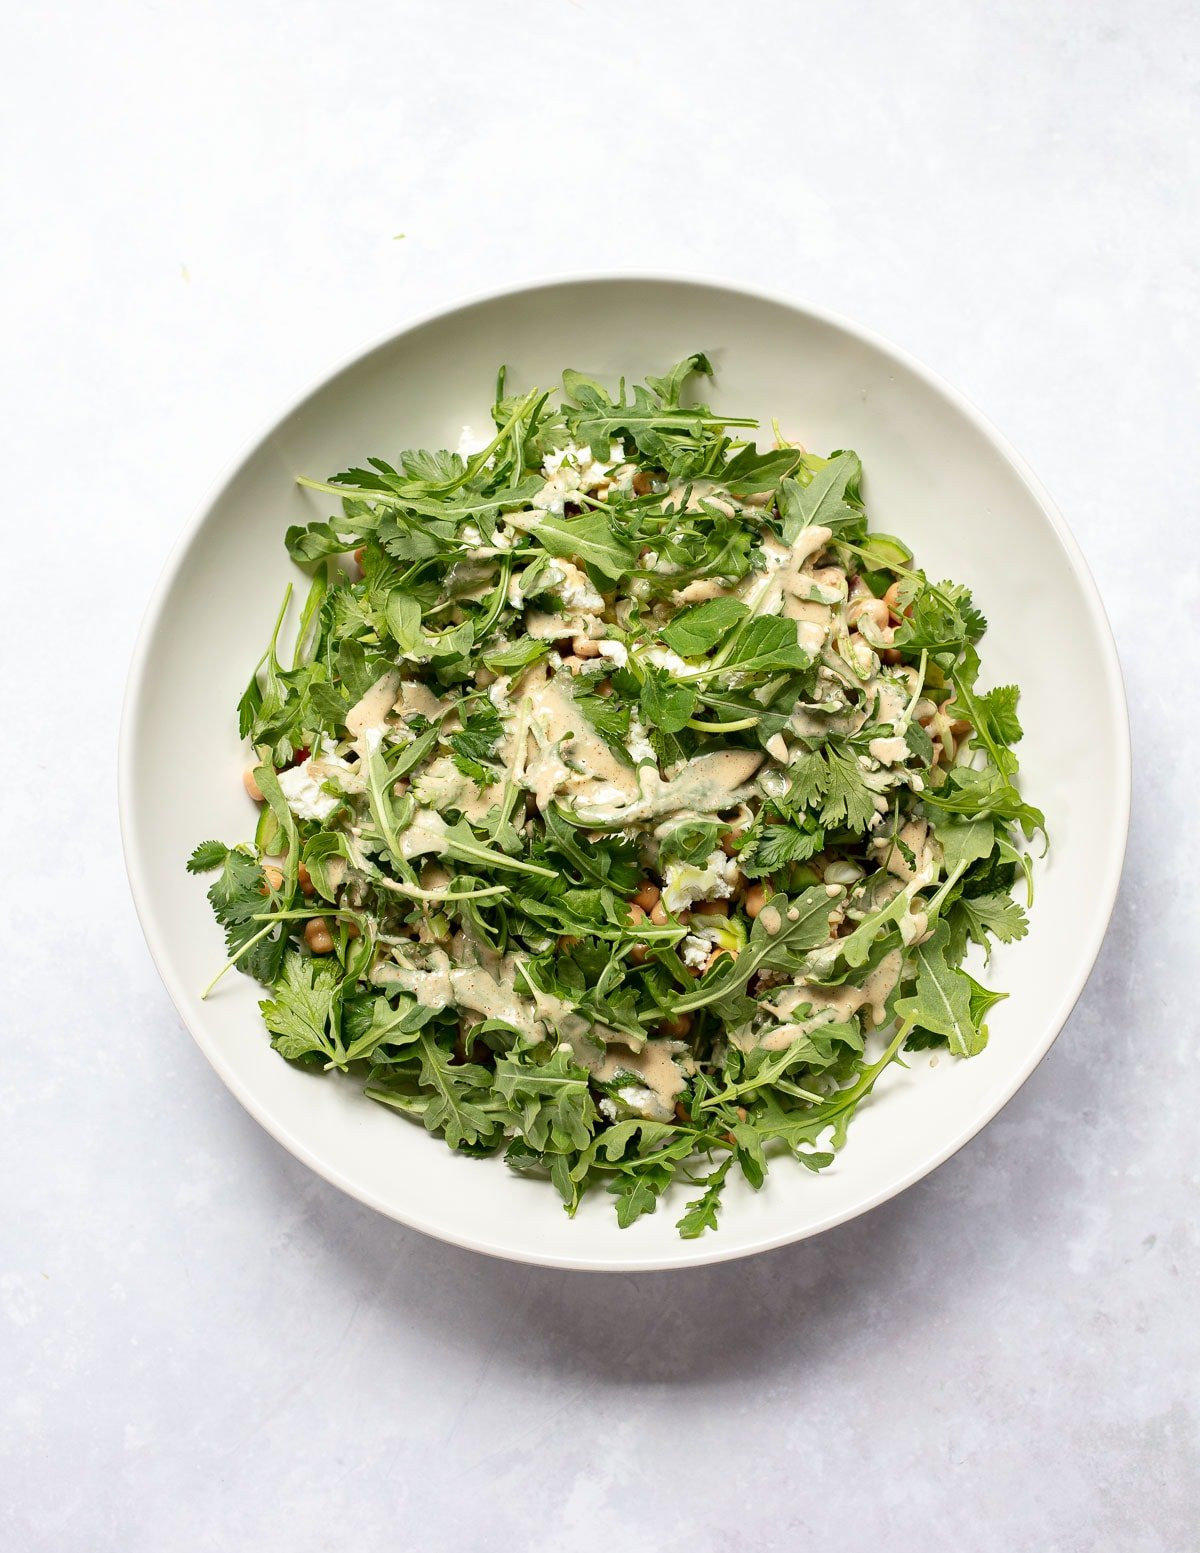 Mixed salad with baby greesn, bulgur wheat, vegetables and tahini dressing in a large serving bowl.